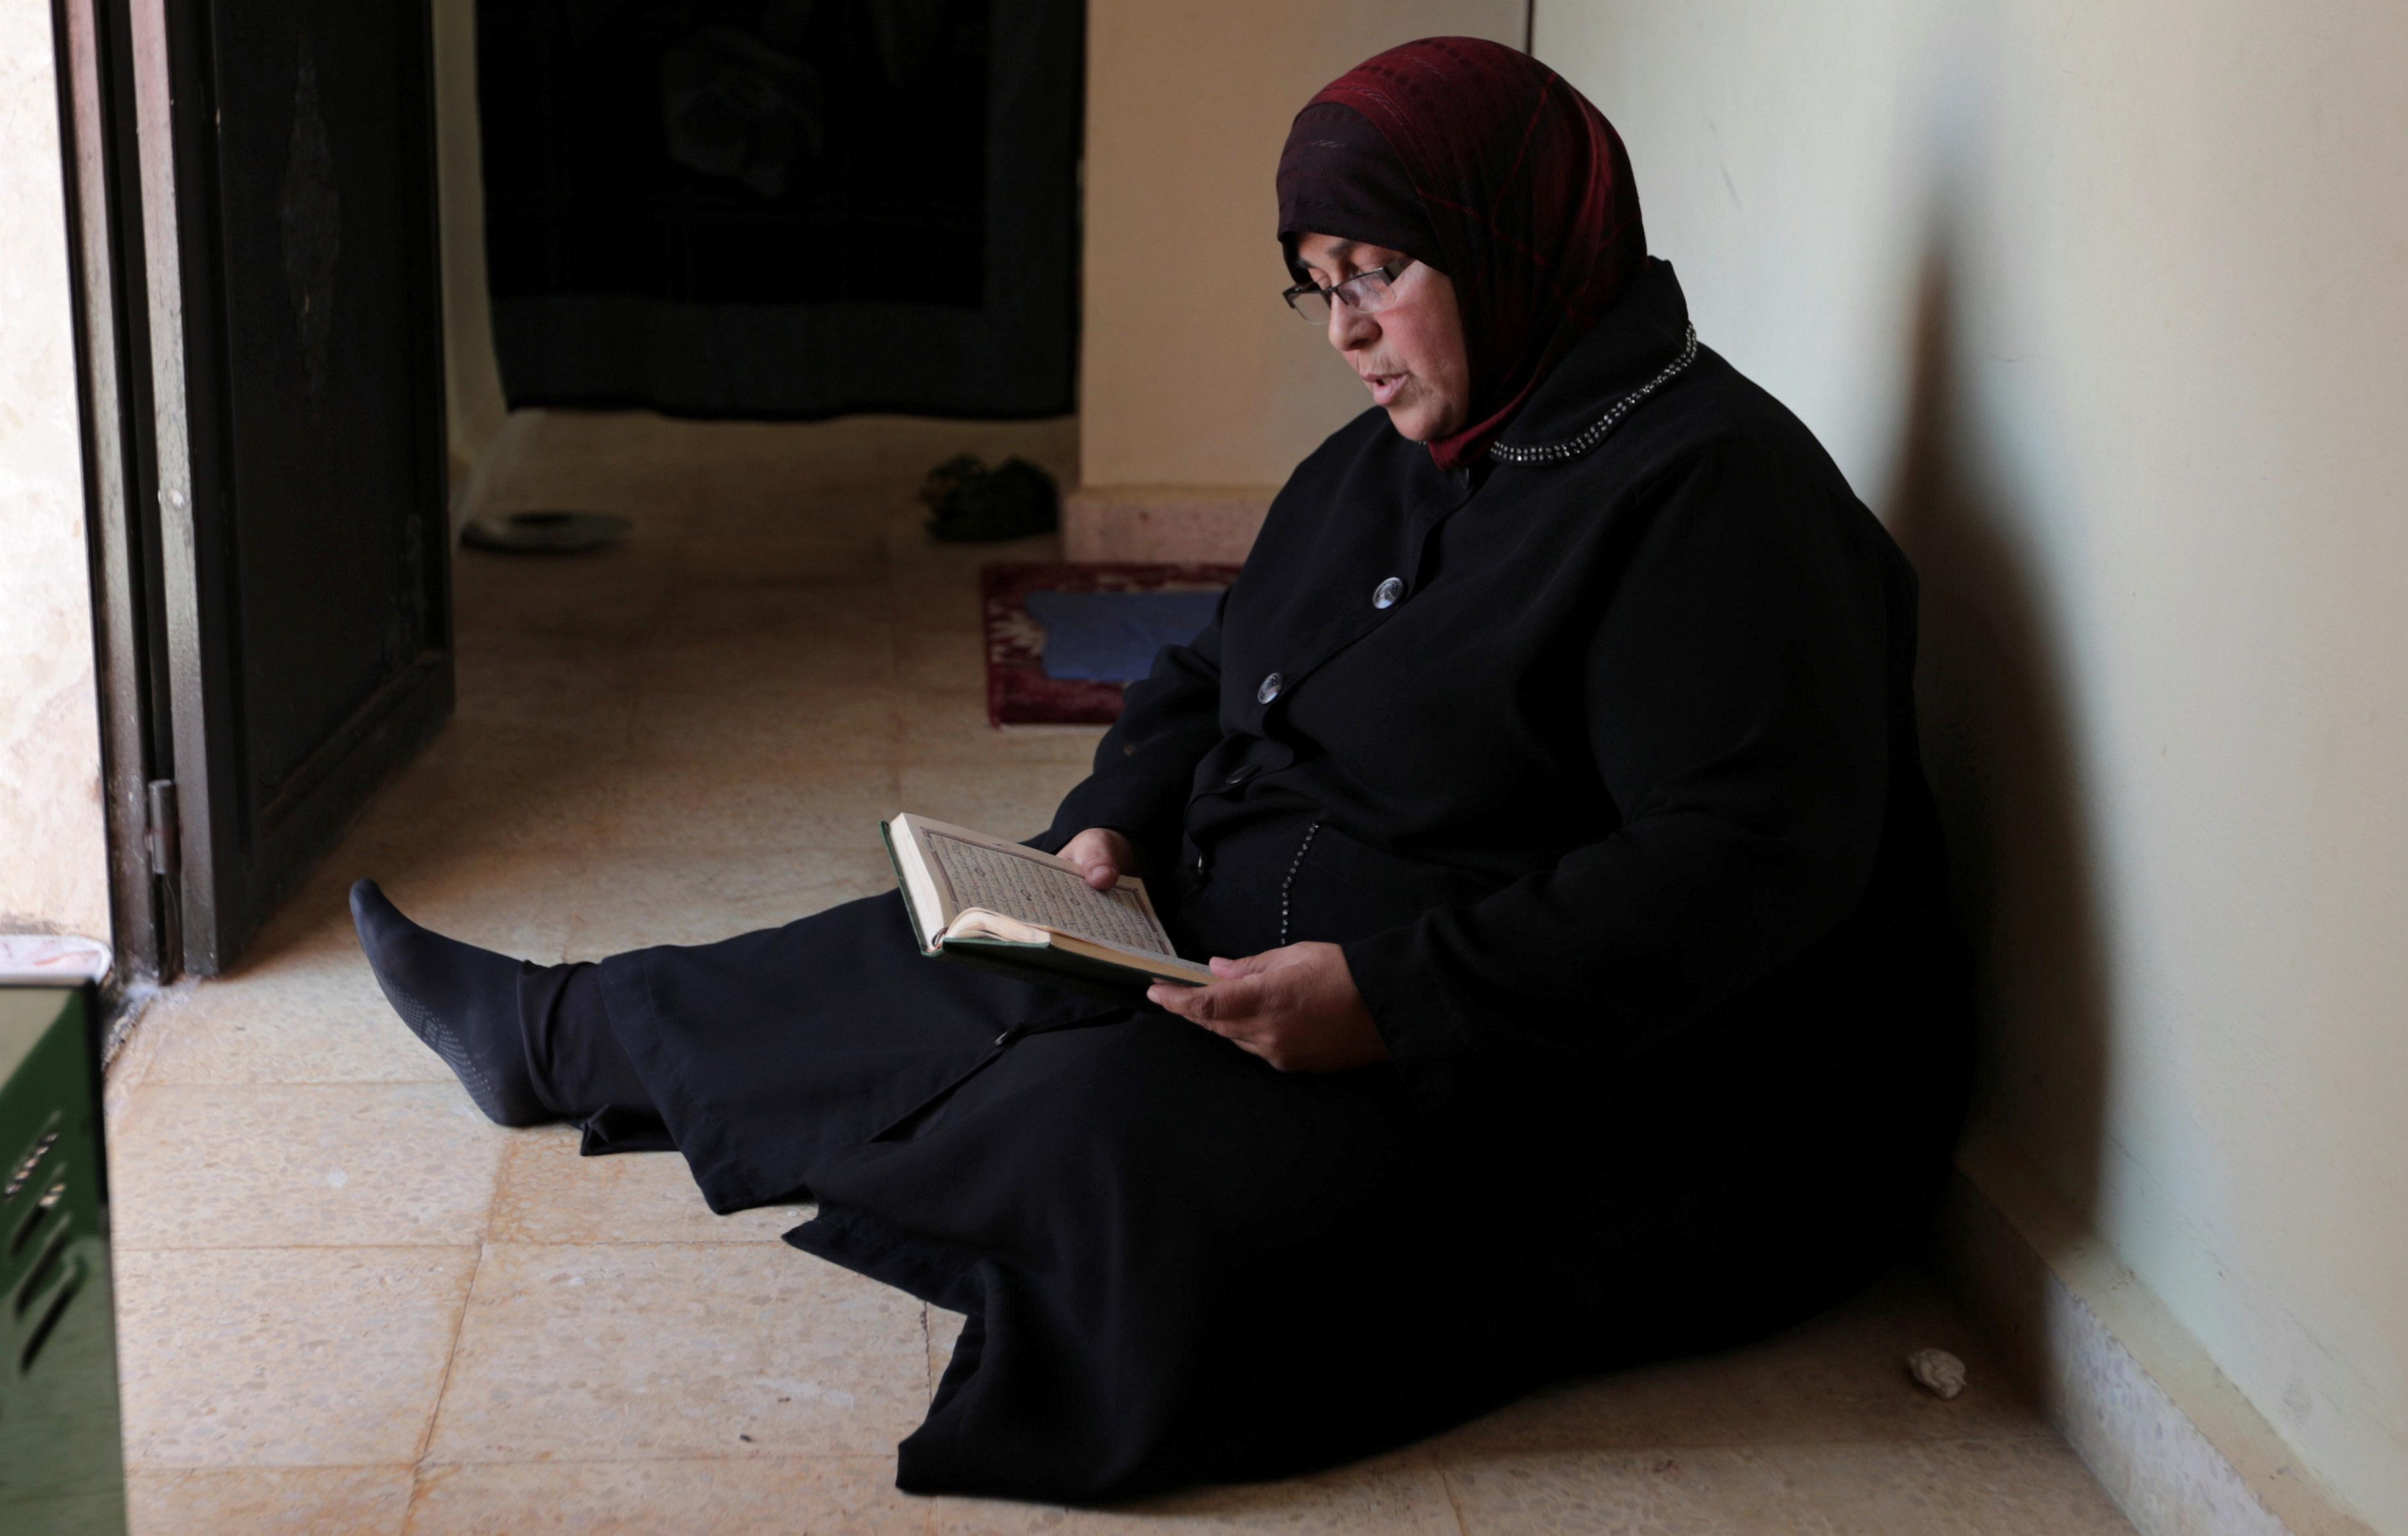 After refuge in northwest Syria, a family again faces danger